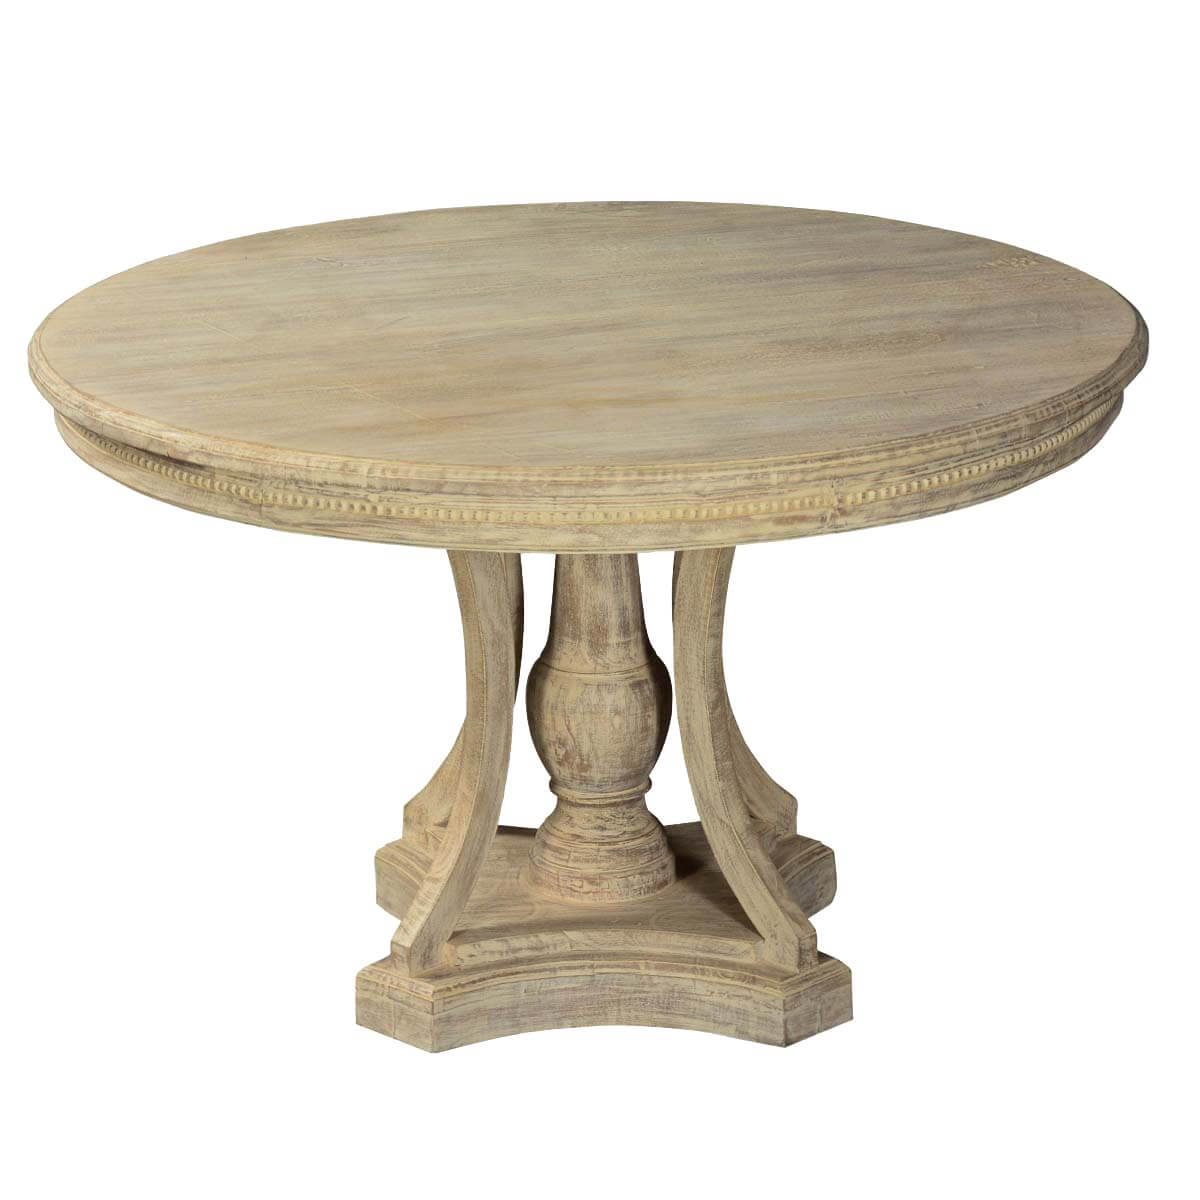 Whitewashed Mango Wood 47 Round Pedestal Dining Table